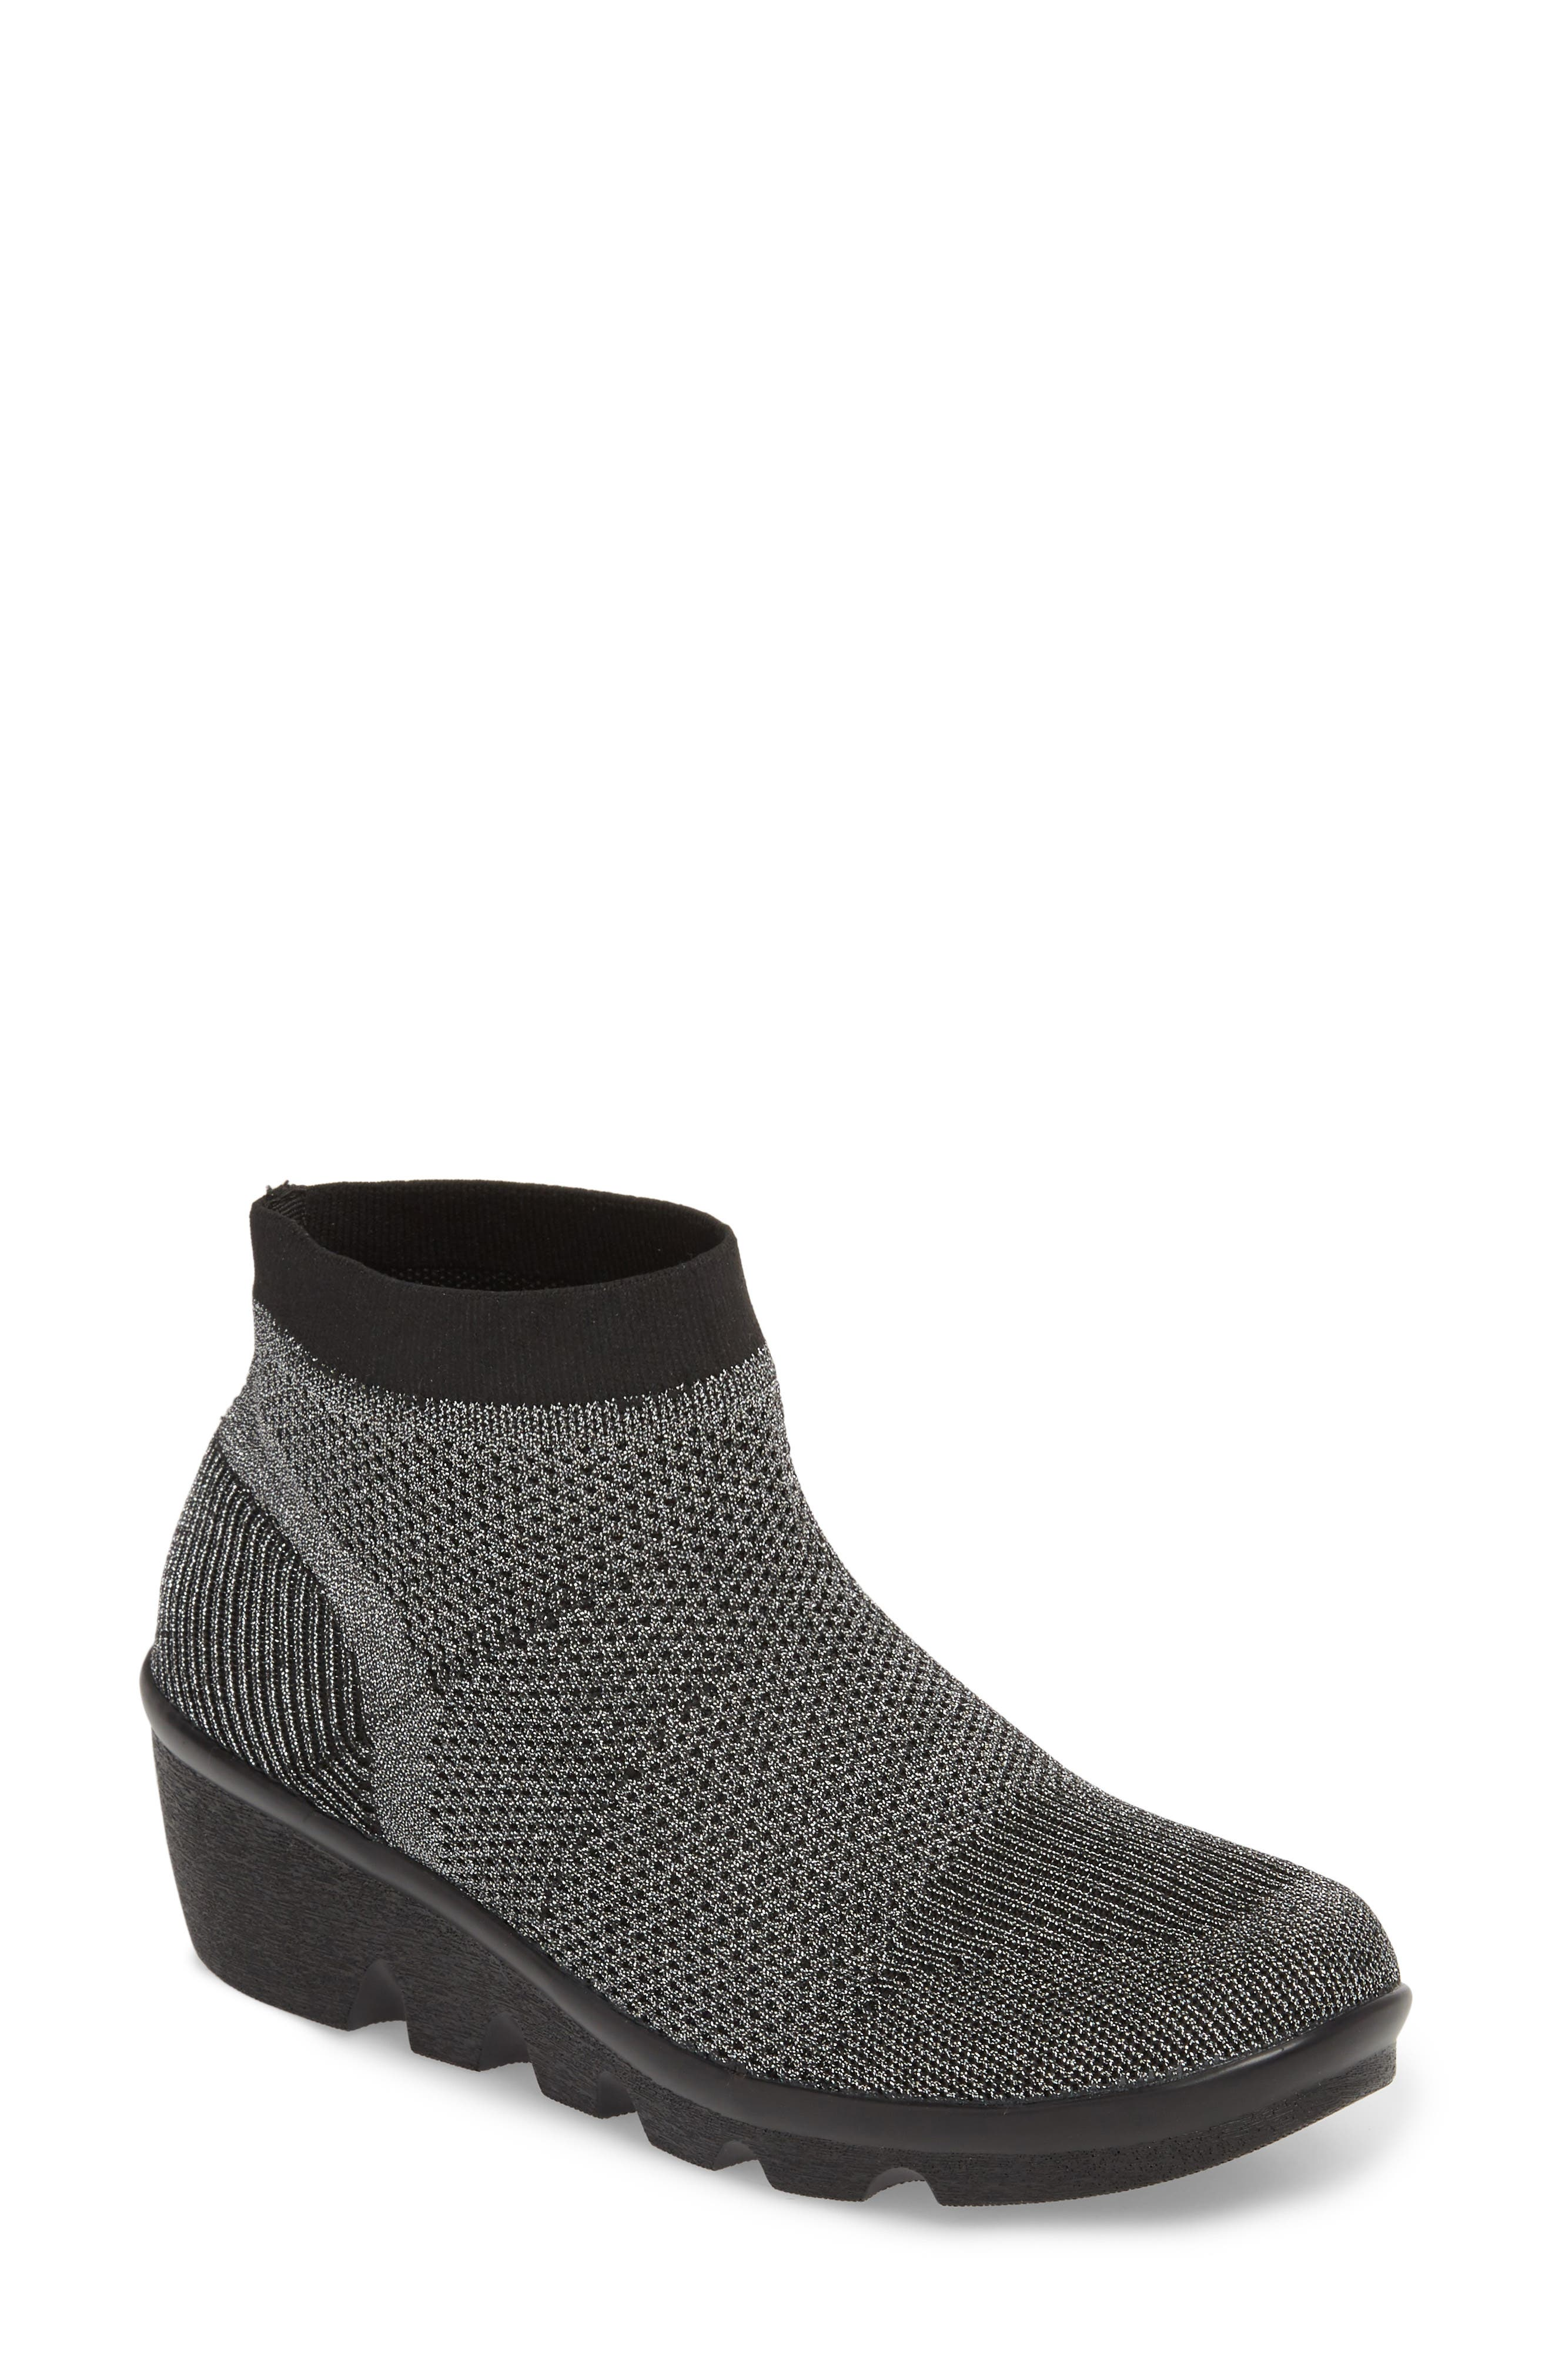 Camryn Knit Bootie,                             Main thumbnail 1, color,                             GUNMETAL FABRIC